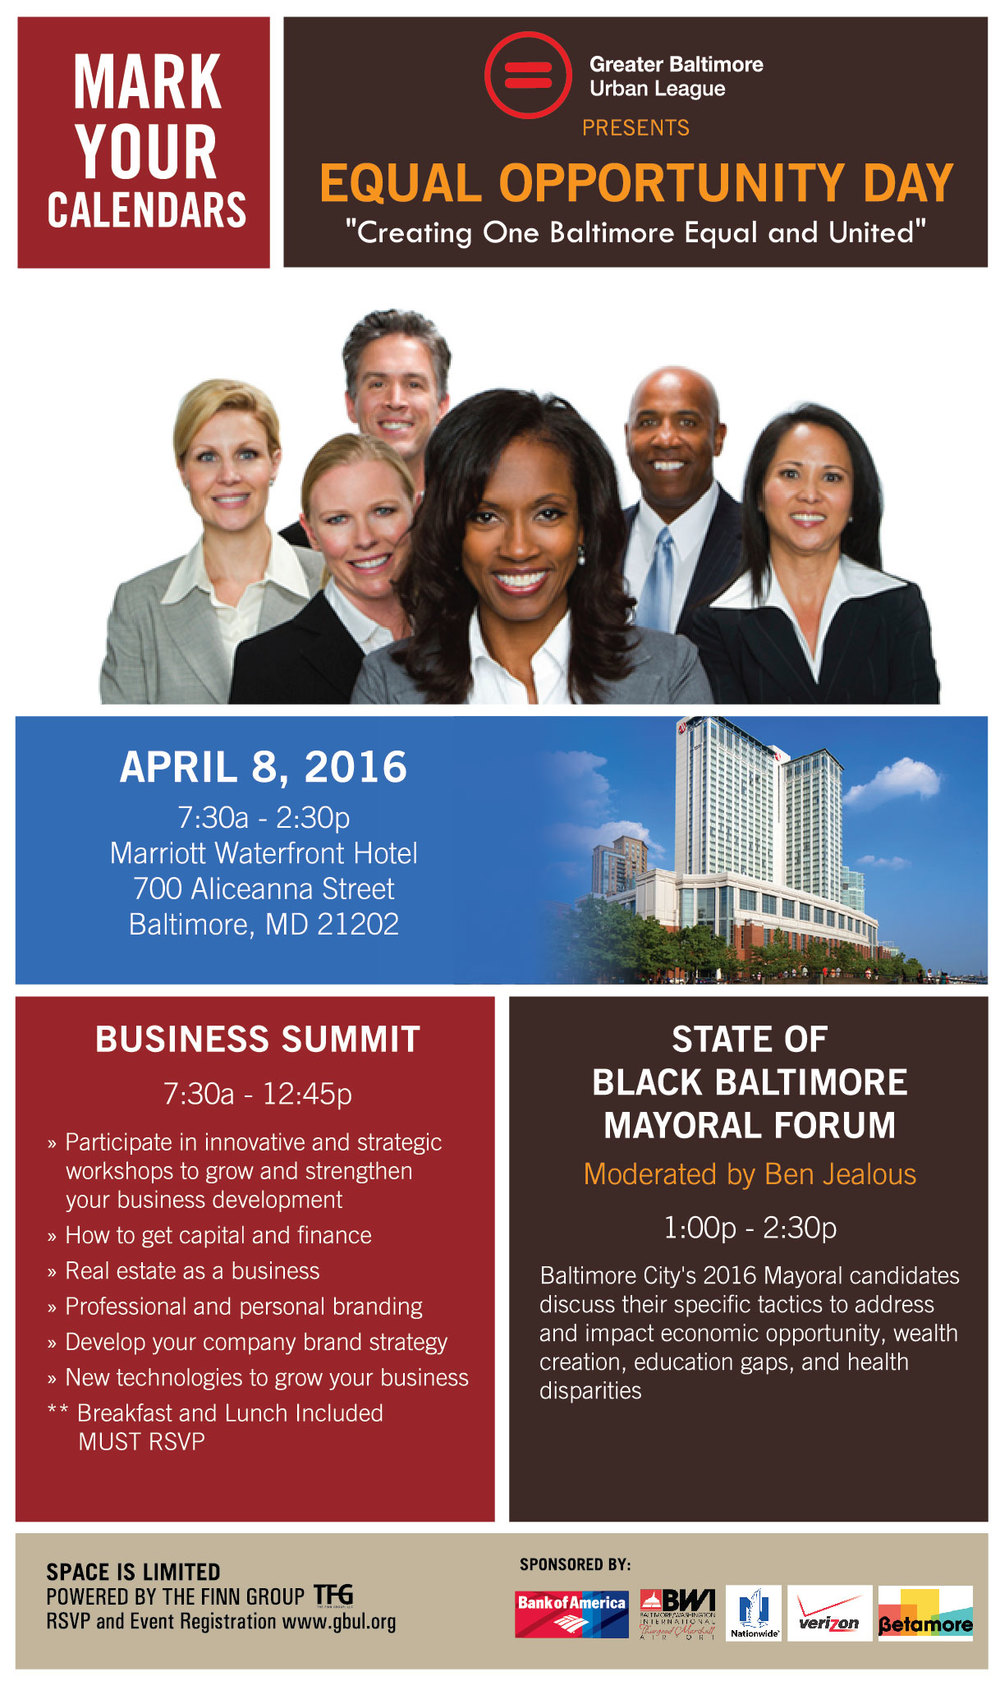 Greater Baltimore Urban League Equal Opportunity Day 2016